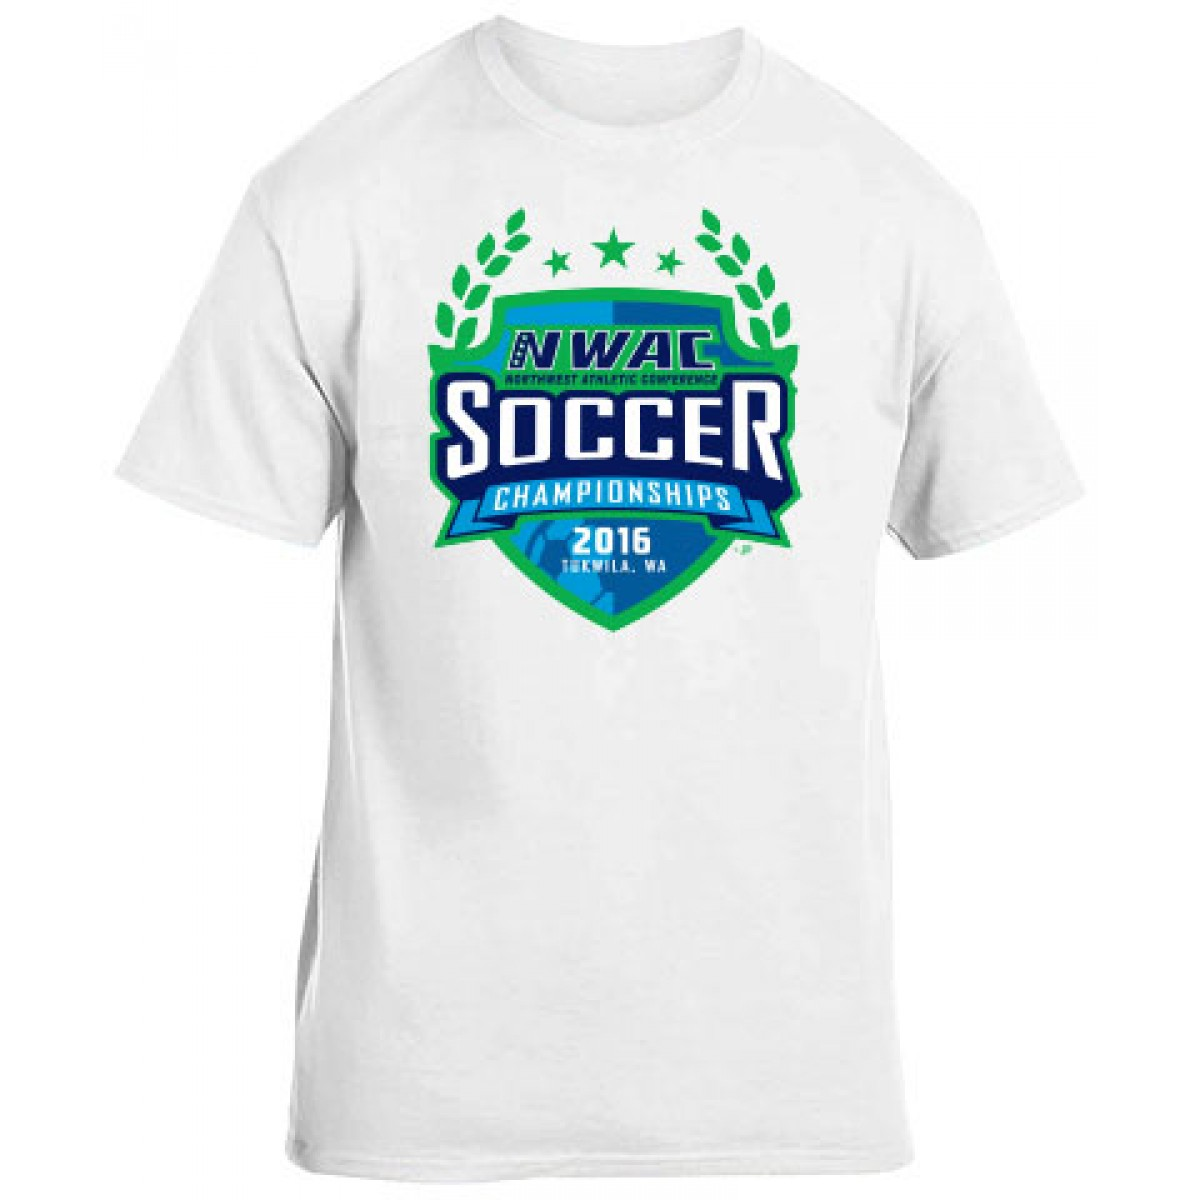 2016 NWAC Soccer Championships Special Item-White-YL